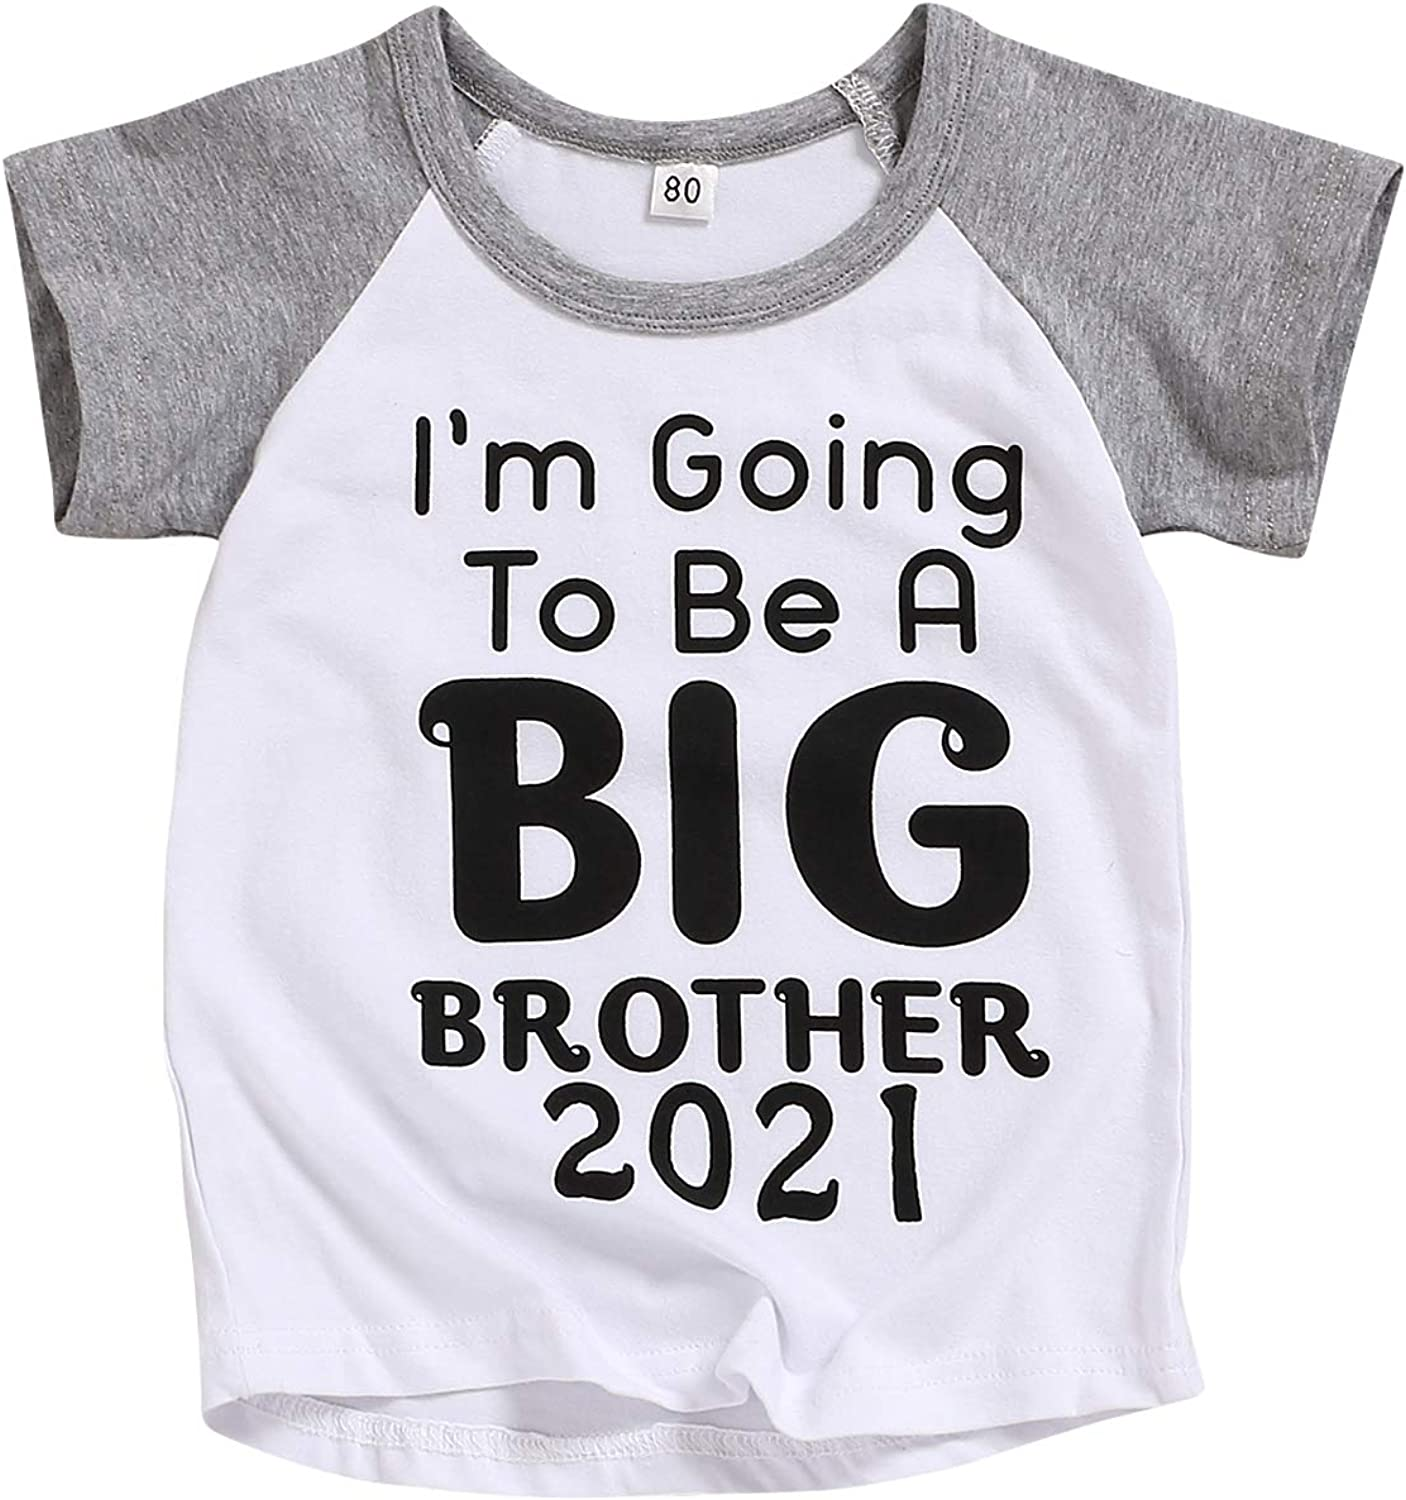 MagicPark Toddler Baby Boys T-Shirt Promoted to Big Brother Letters Print Short Sleeve and Long Sleeve Blouse